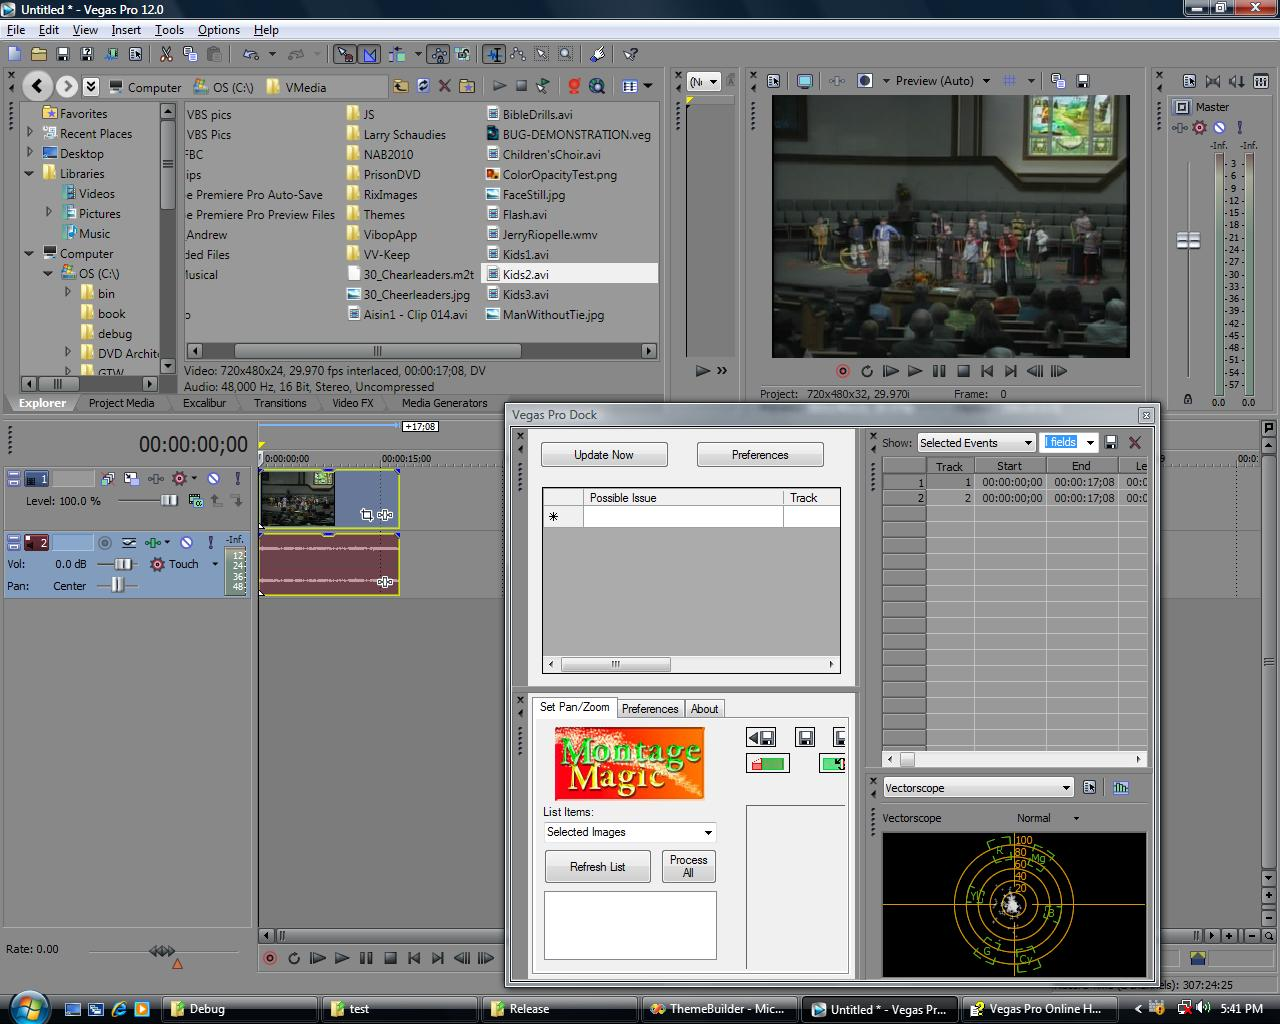 Sony vegas pro 16 crack & serial keys download full version.